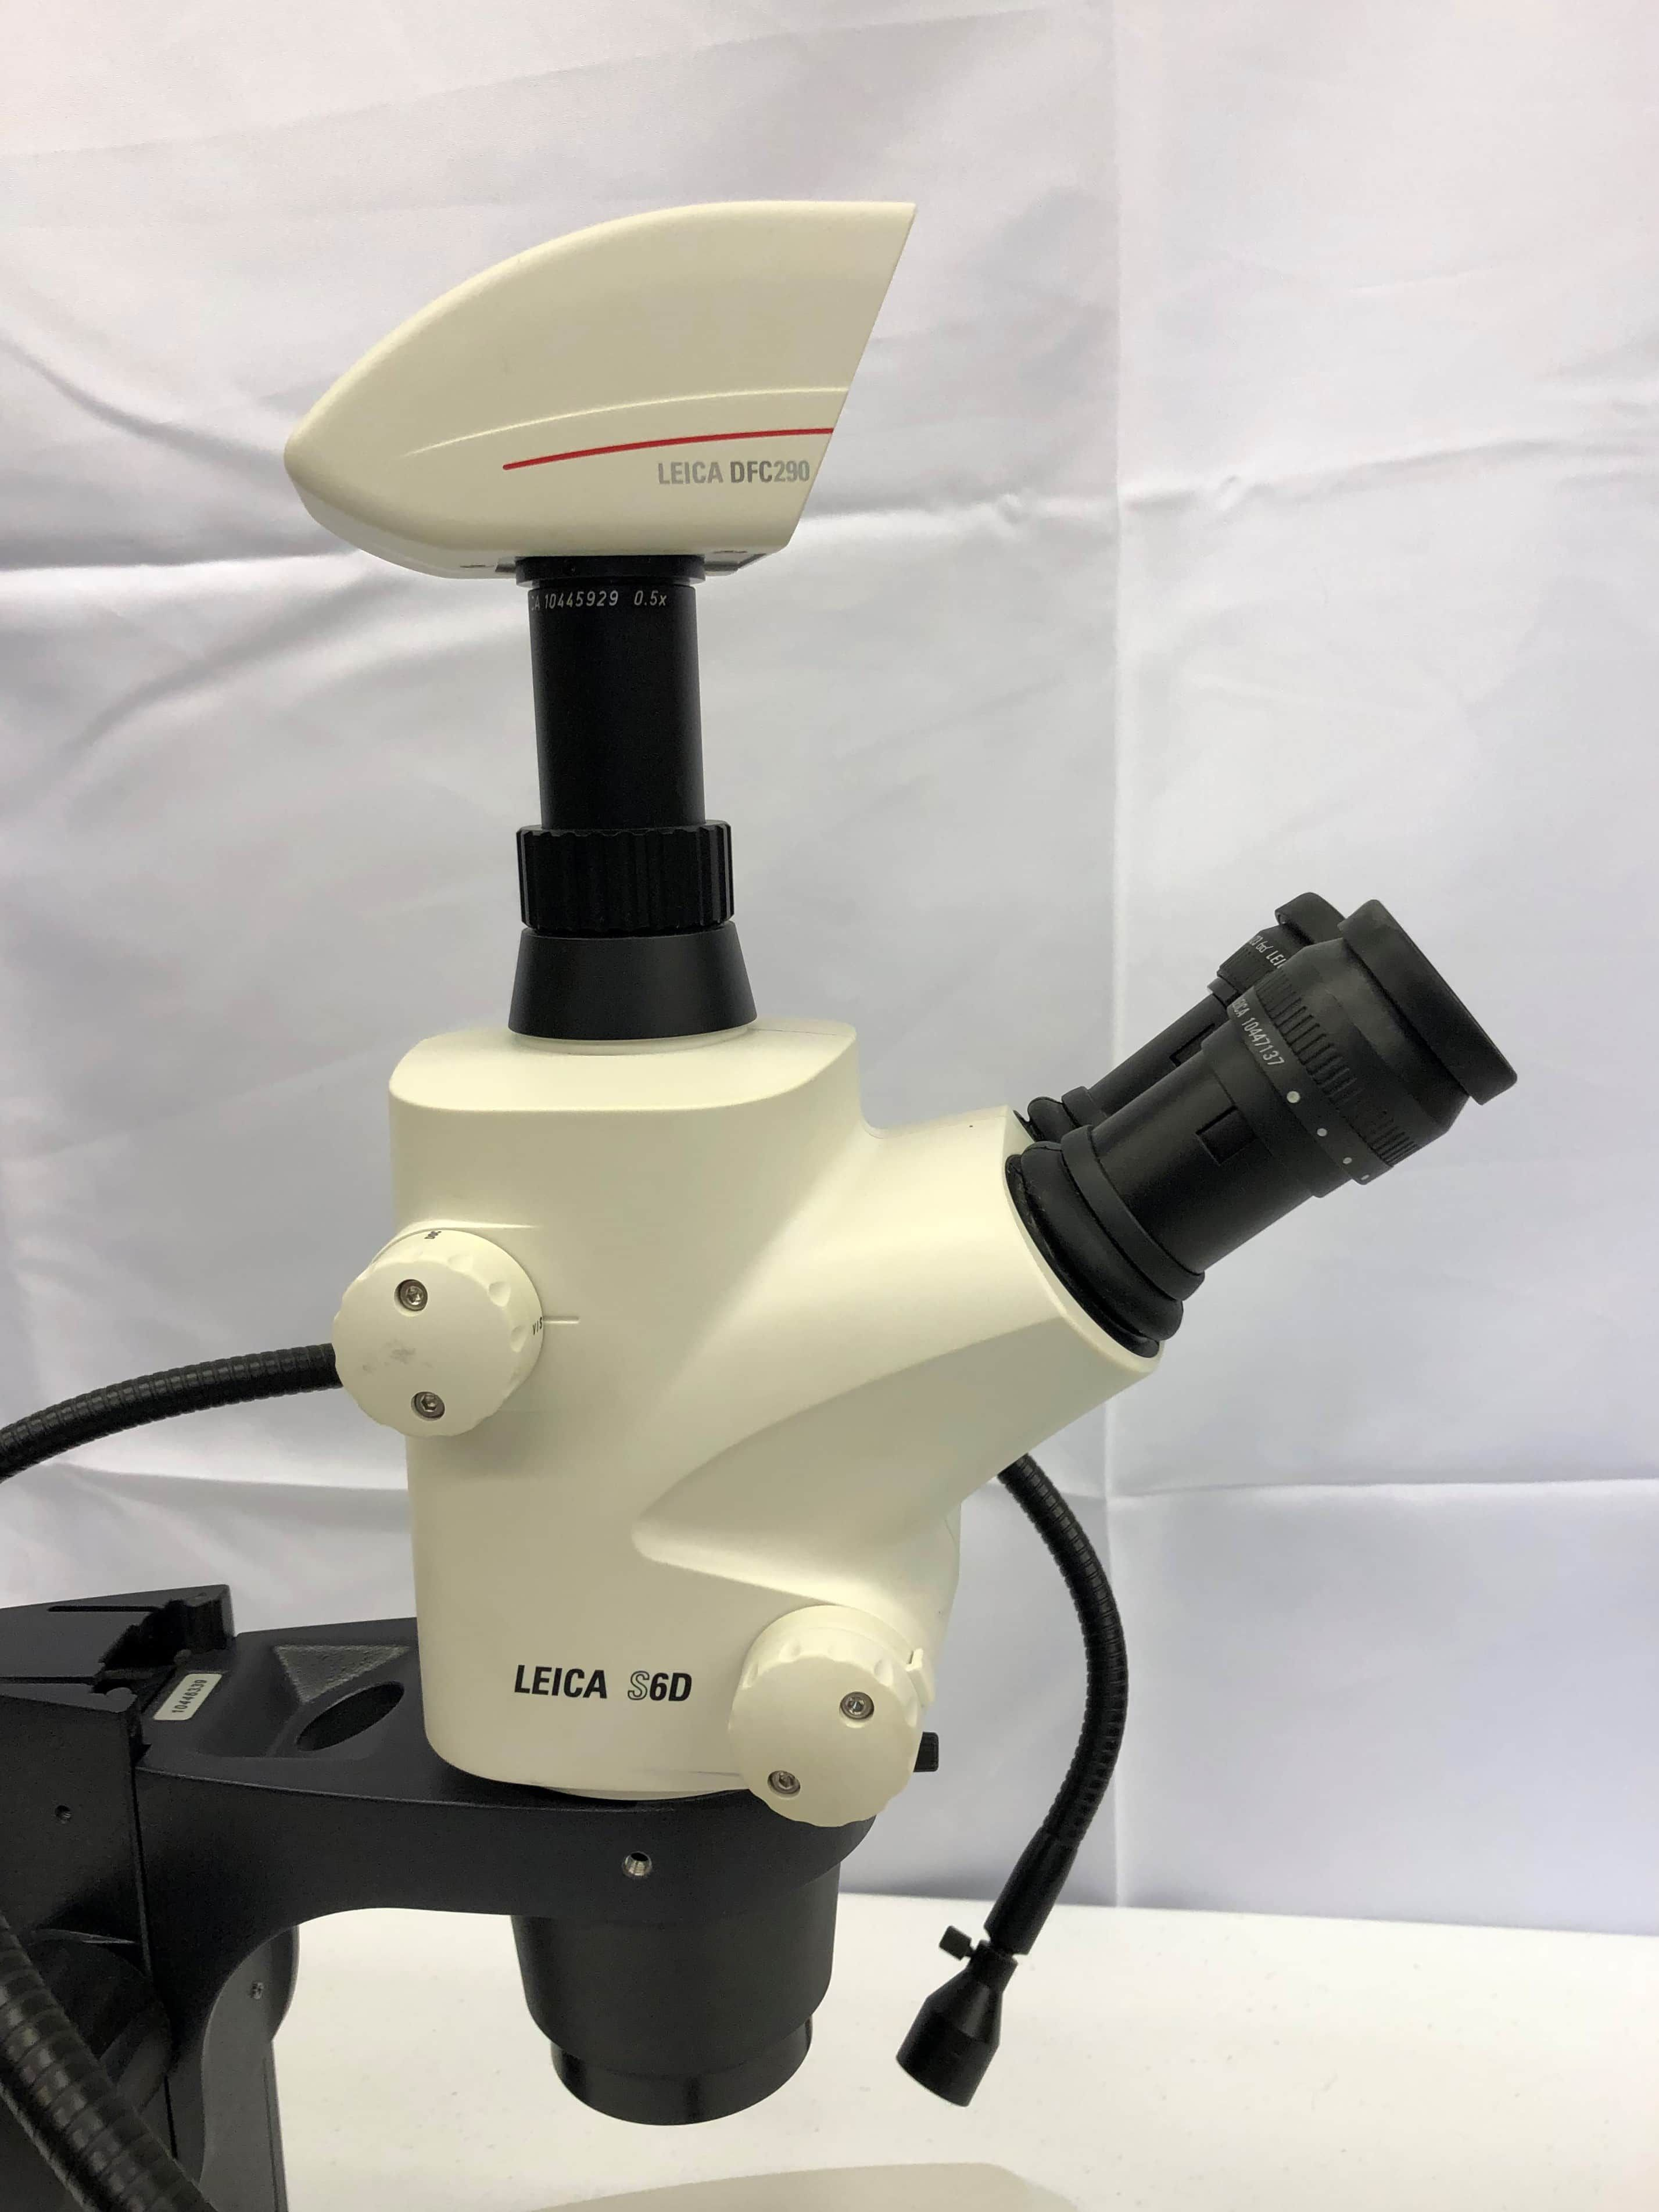 Leica S6d Stereo Zoom  Microscope with L2 Lightsource